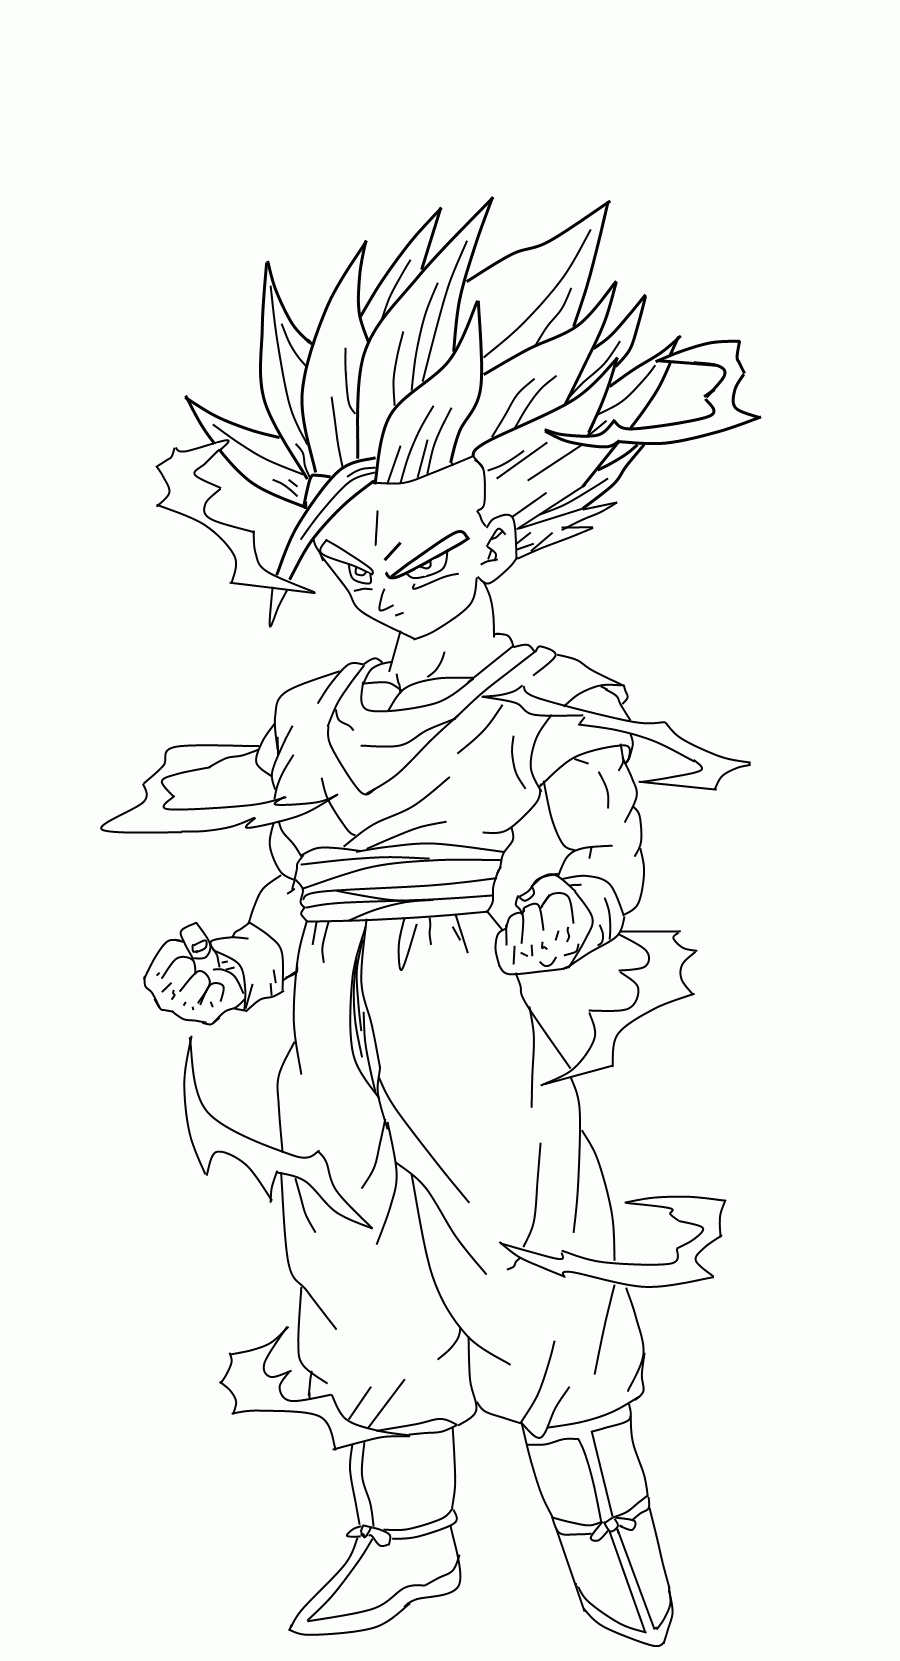 Trolls Coloring Pages Printable - Dbz Coloring Pages Gohan Coloring Home